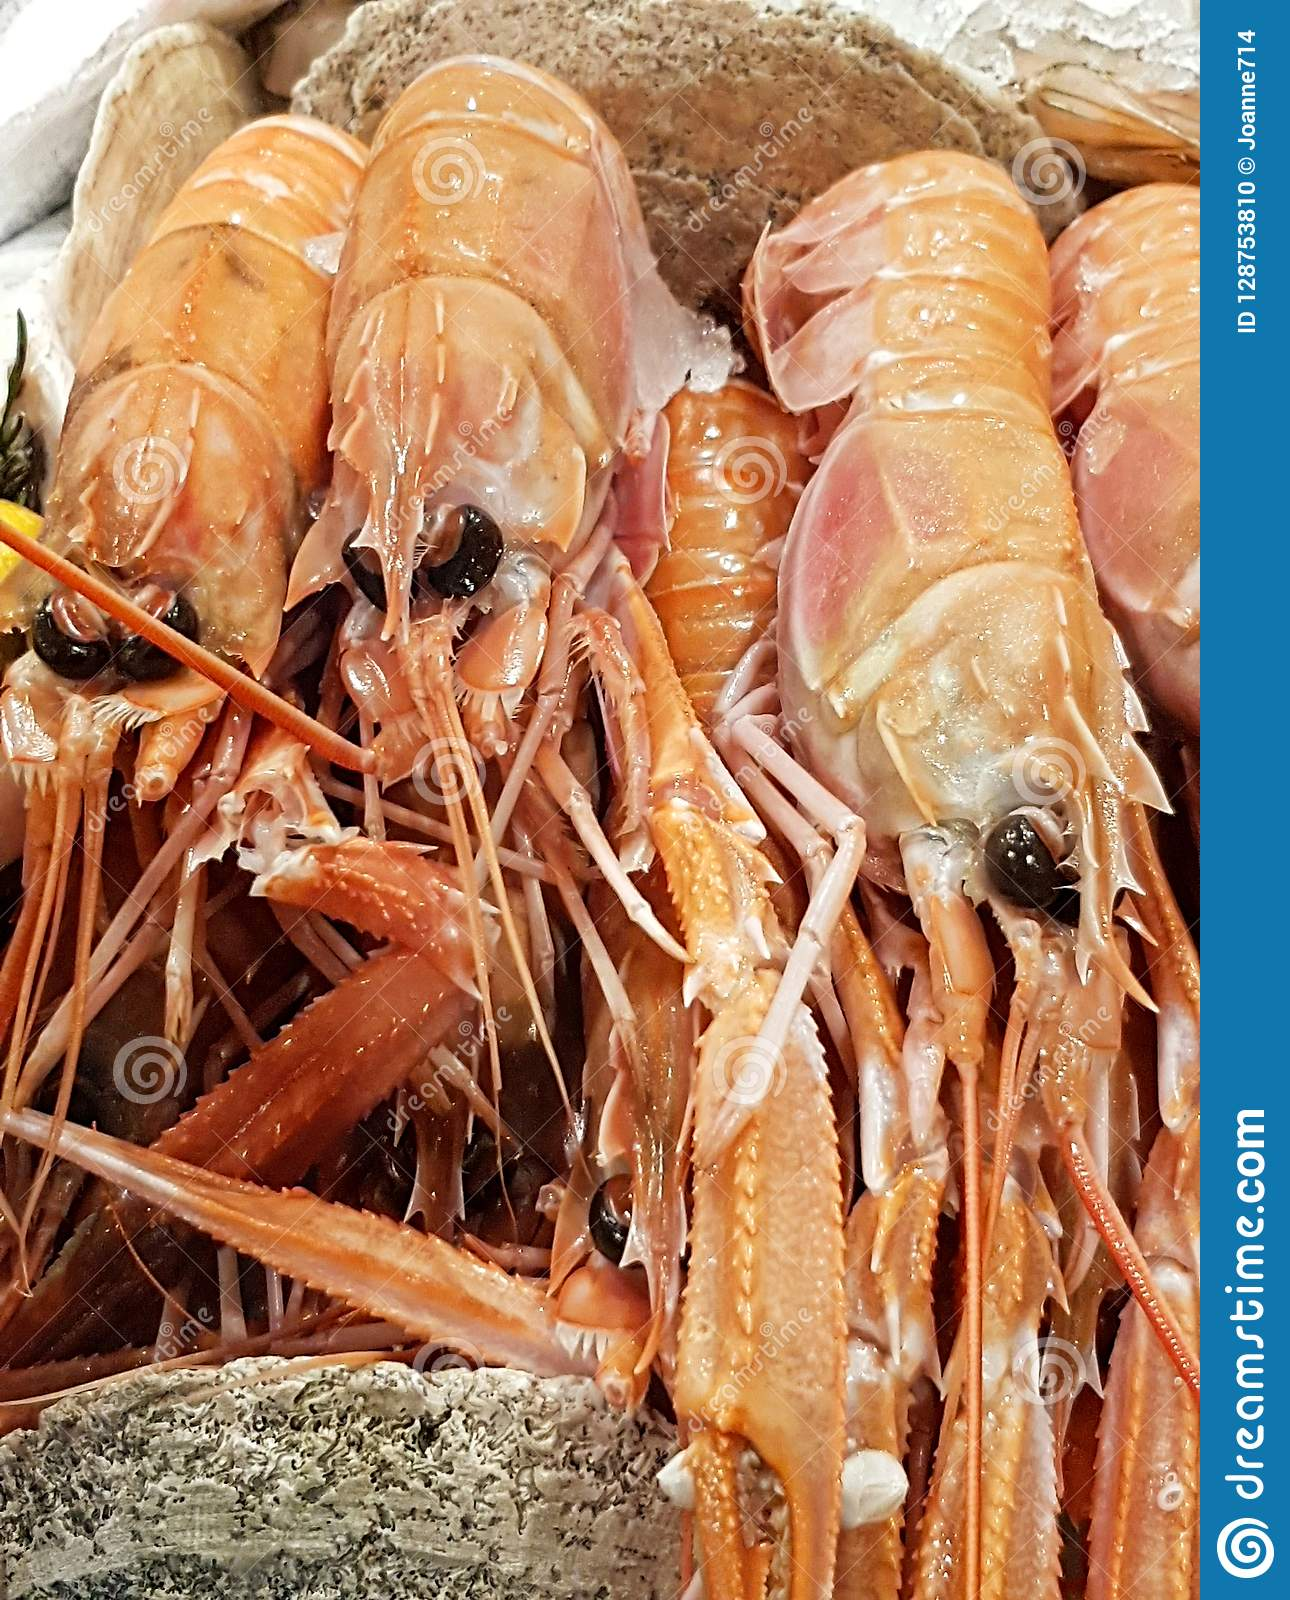 King prawns on sale in a local market